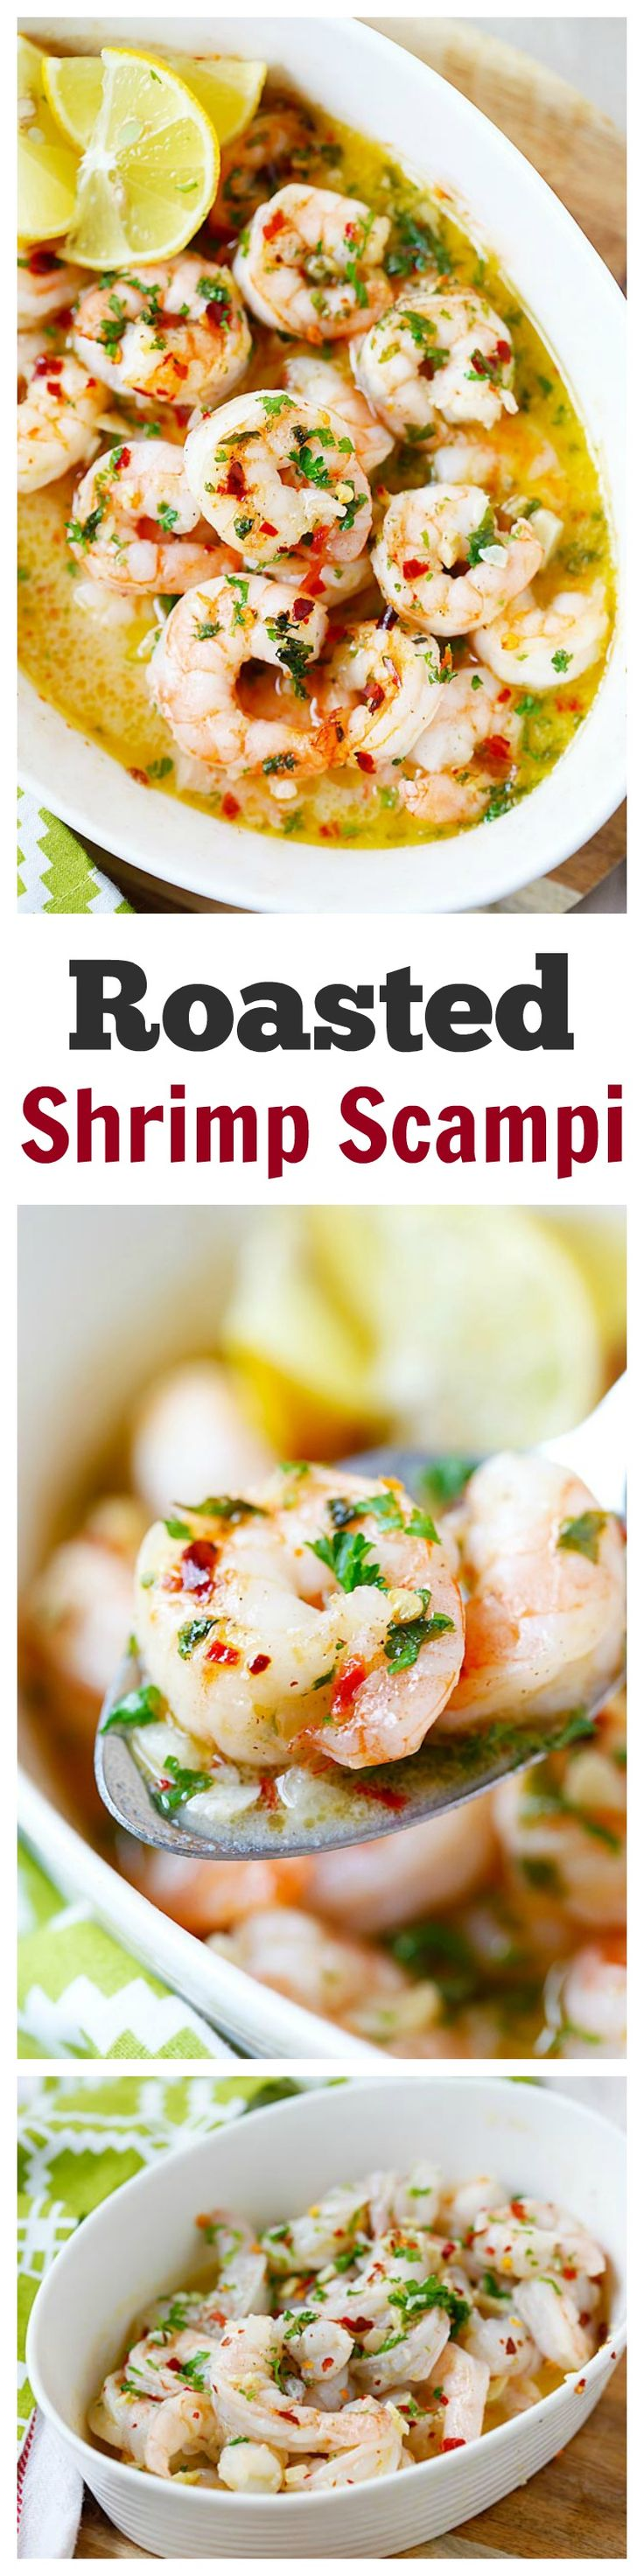 American - Roasted Shrimp Scampi – the easiest and BEST roasted shrimp scampi ever. 5 mins to prep, 5 mins in the oven and dinner is ready for the entire family | rasamalaysia.com